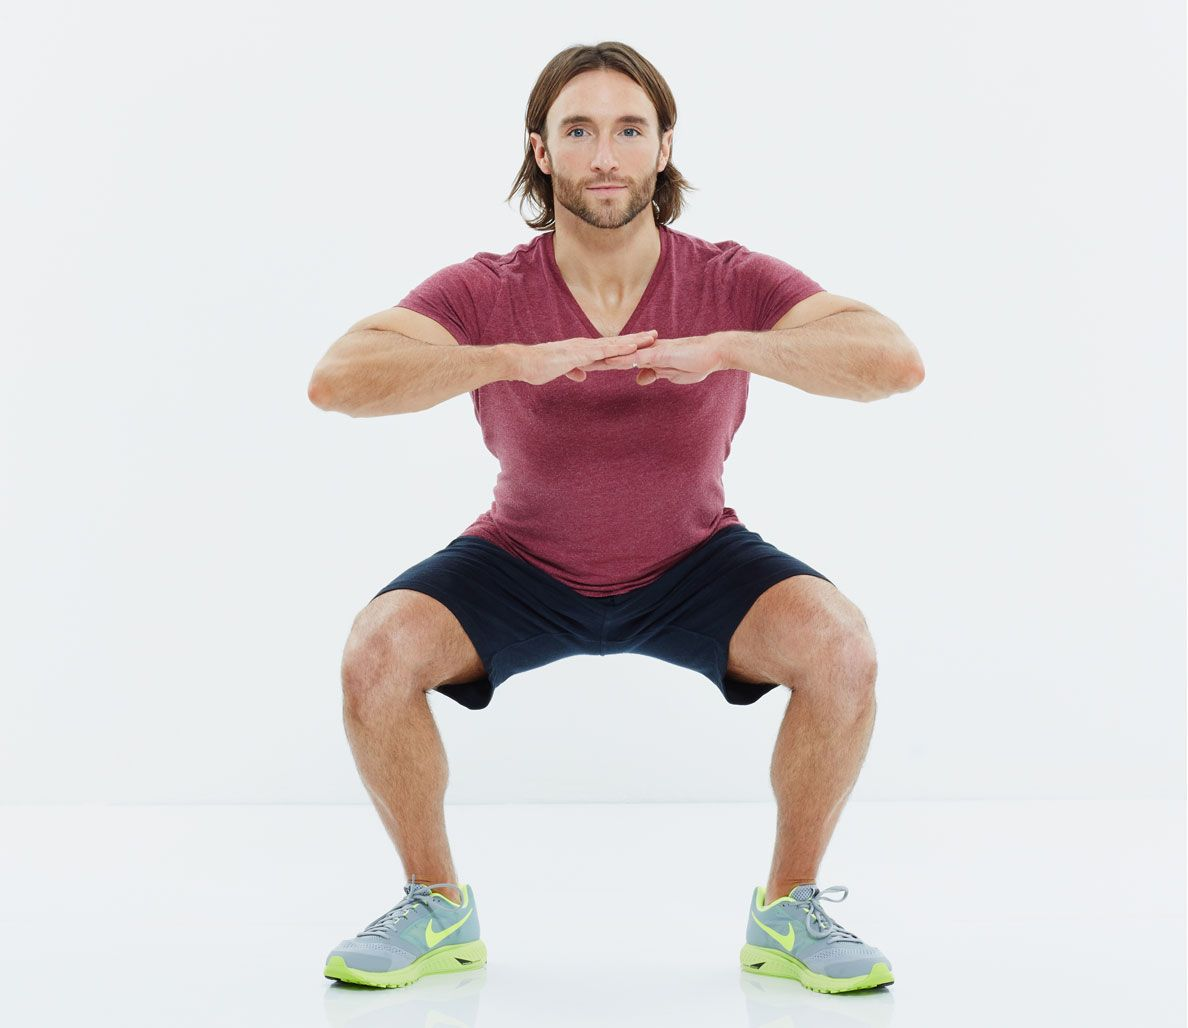 8 Best Weight Plate Exercises BRUTAL HOME FULL BODY